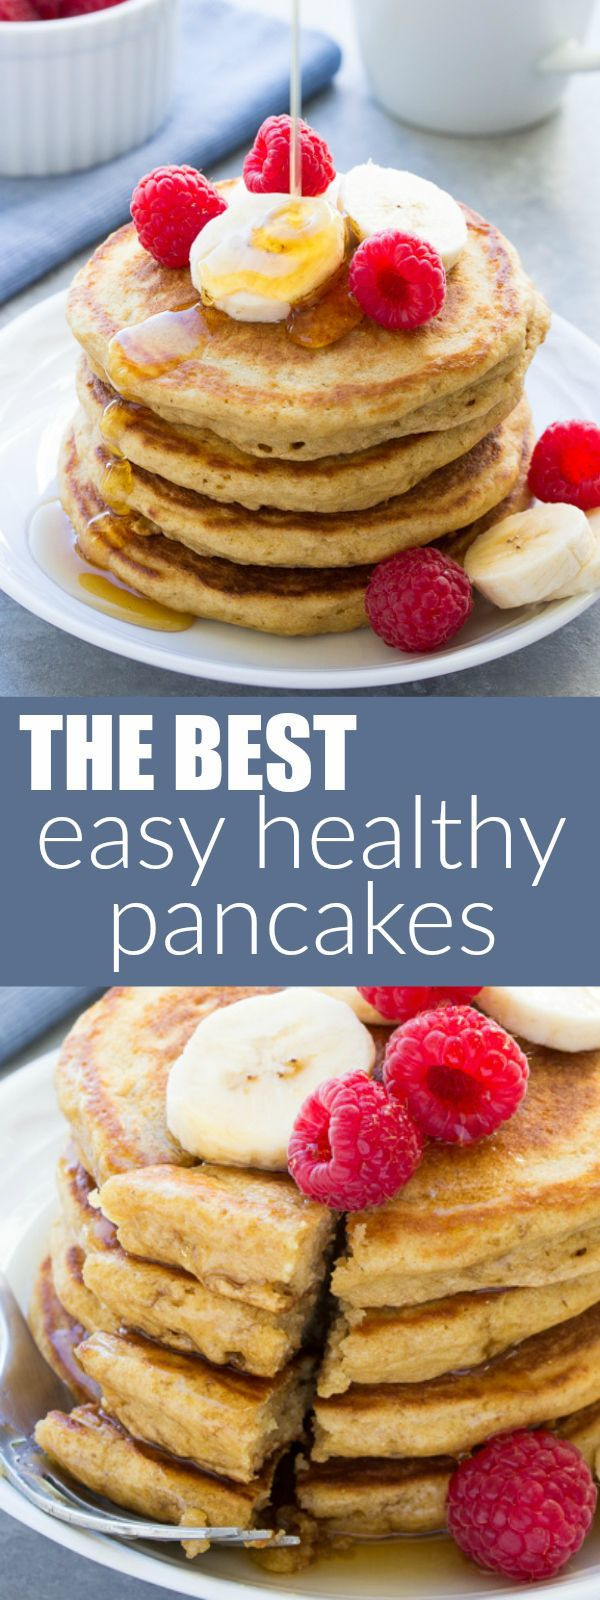 Easy Healthy Pancakes  Tried and True Best Easy Healthy Pancake Recipe This